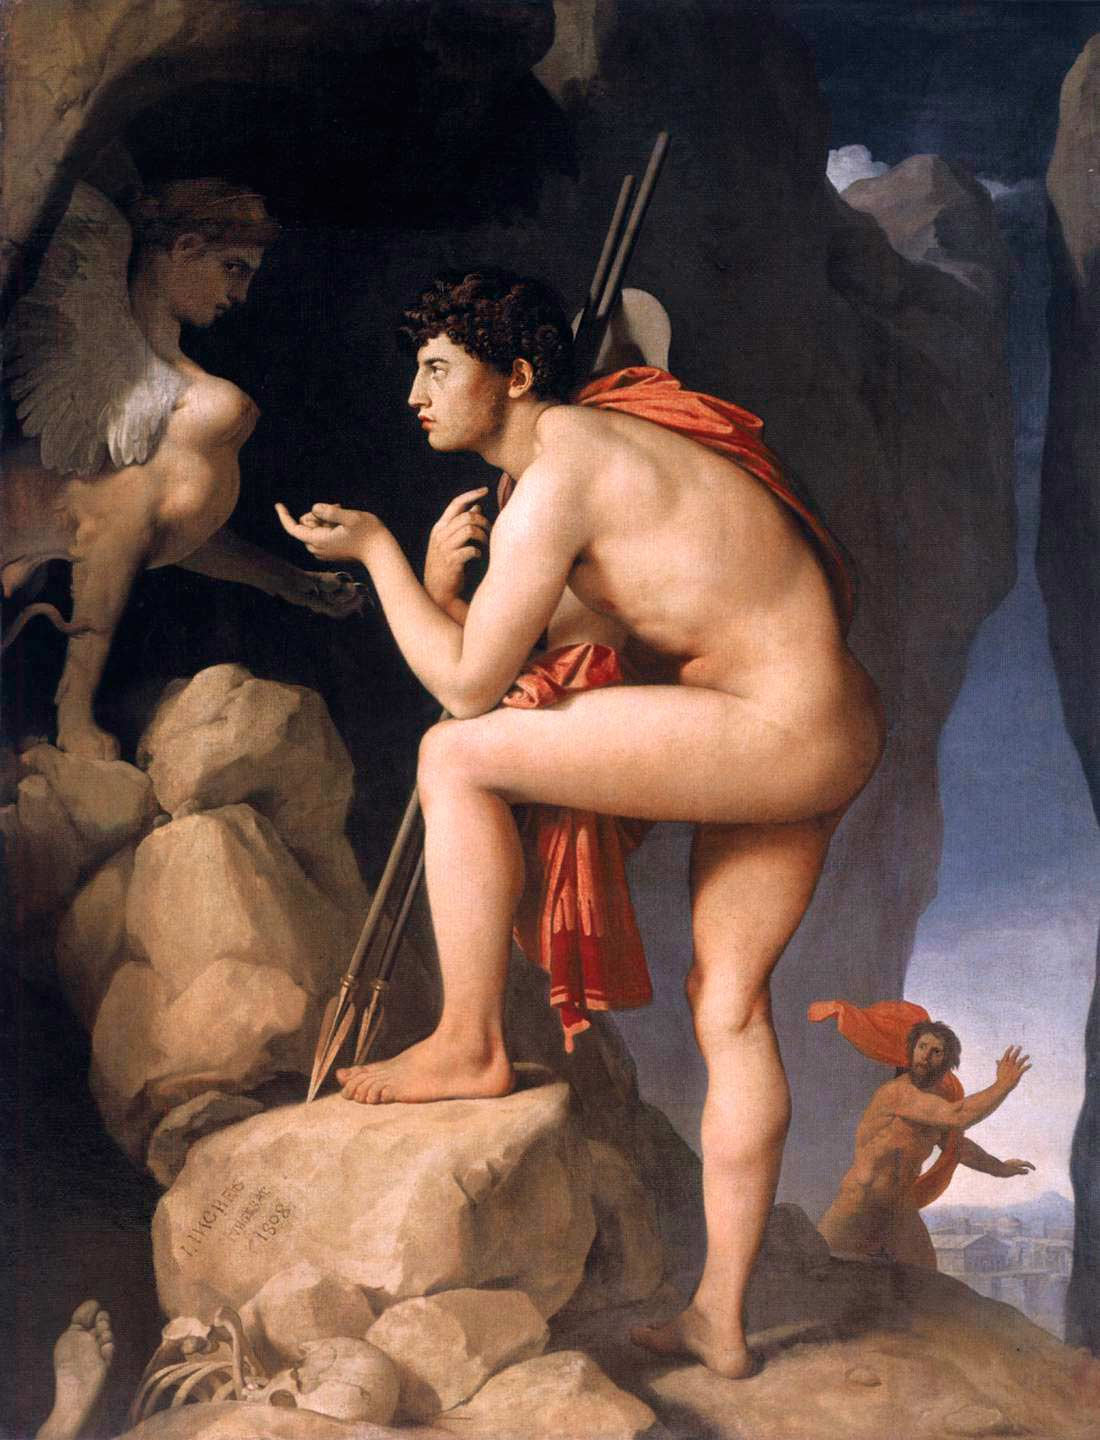 a literary analysis of oedipus the king of riddles in greek mythology Free will in oedipus rex it is funny how in many stories, especially those of greek mythology and plays, the plot is based around a set prophecy that determines the fate of.